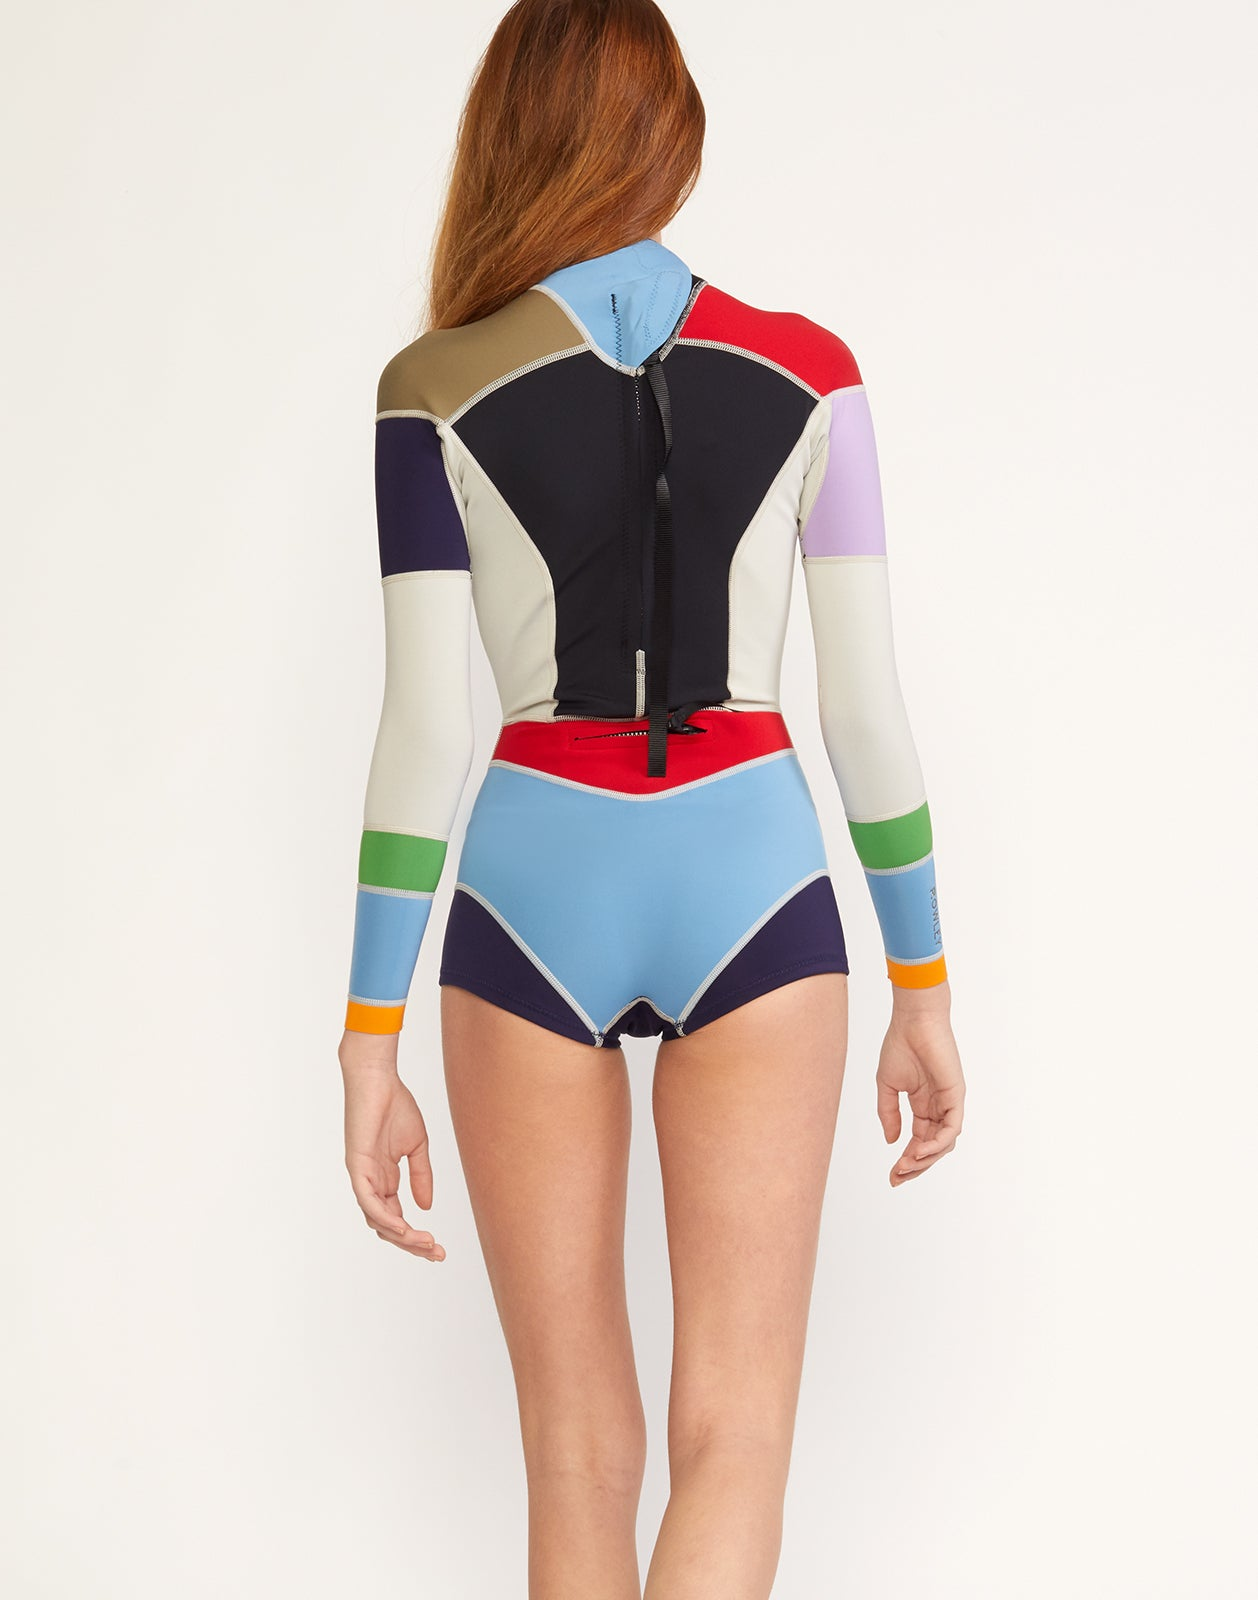 Back view of colorblocked neoprene wetsuit